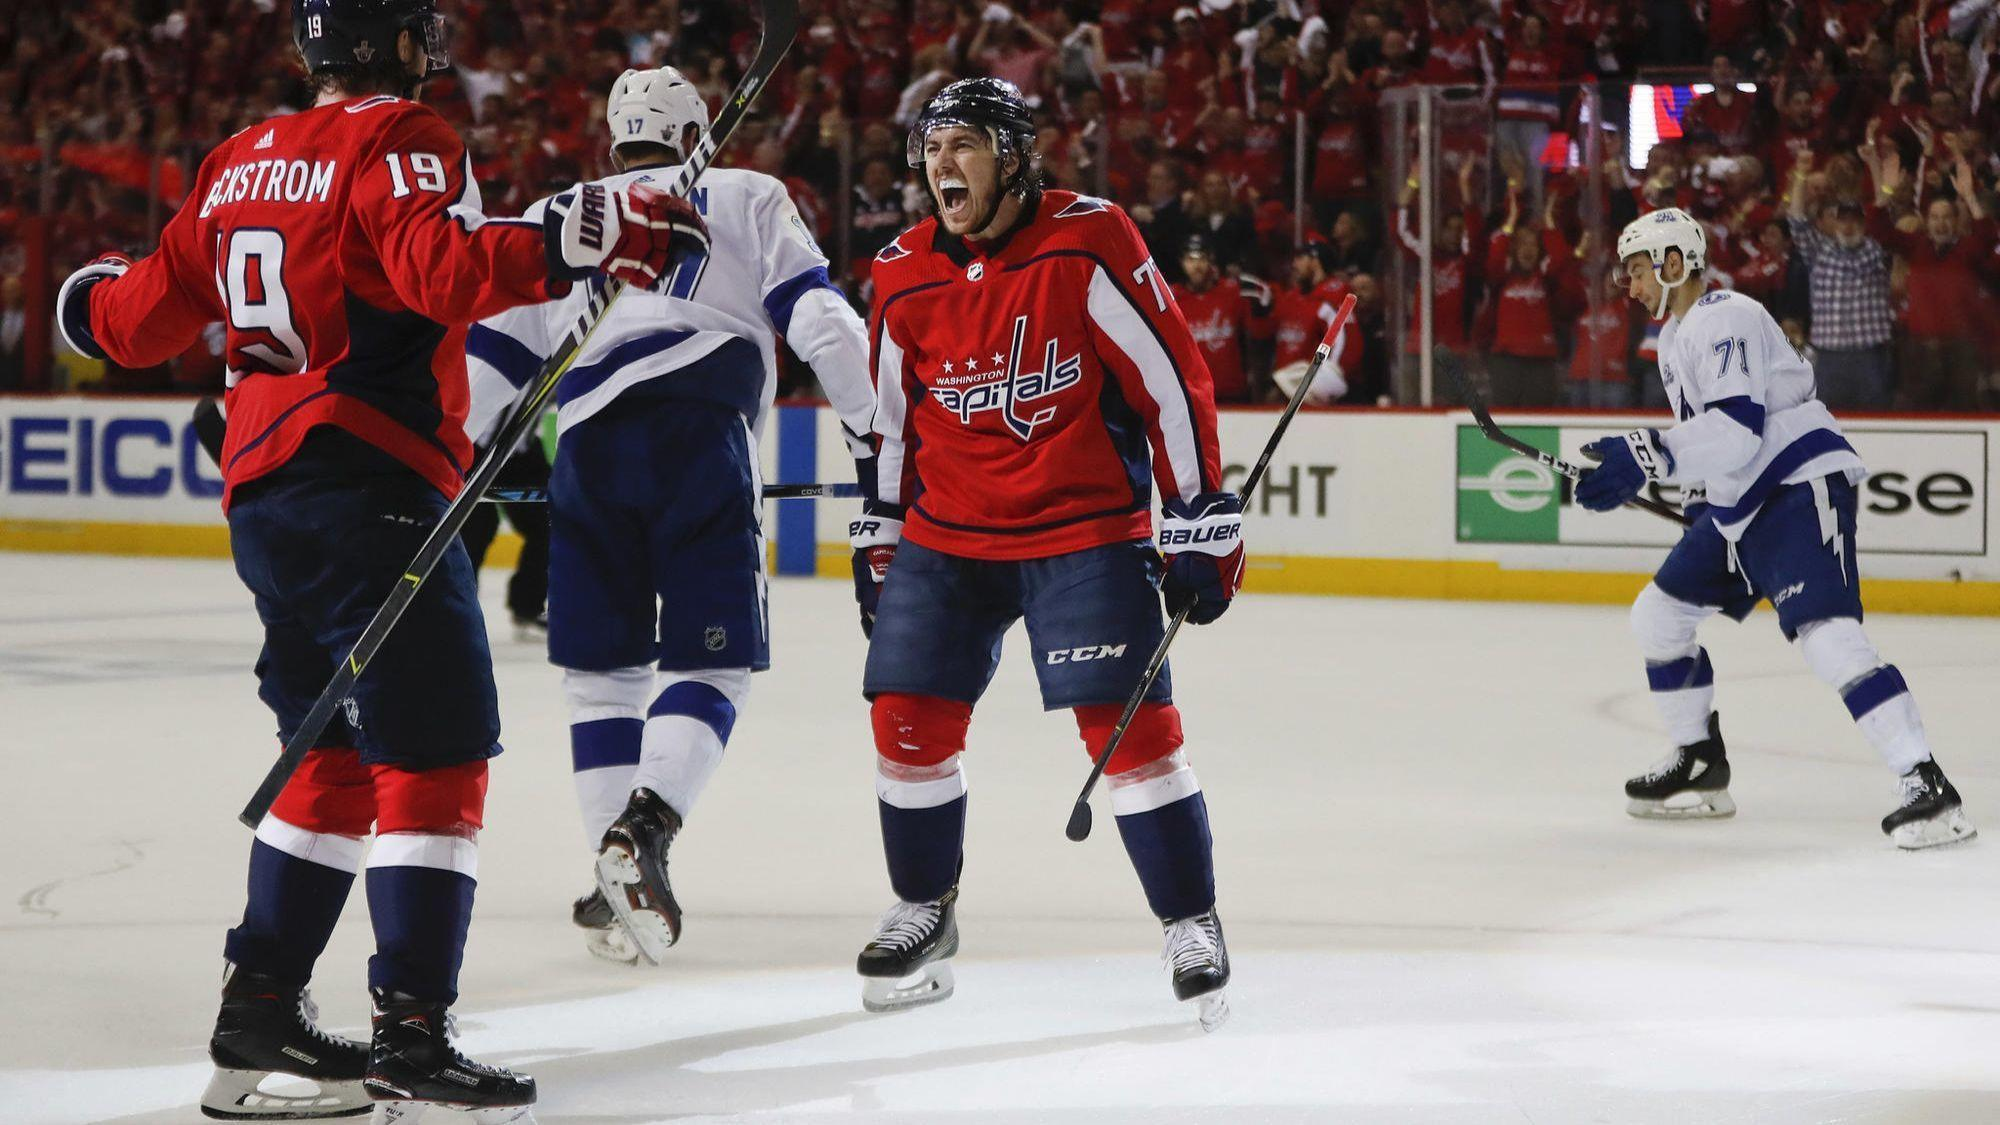 The biggest game of our life   Capitals brace for Game 7 vs. Lightning -  Chicago Tribune 46cf702c220